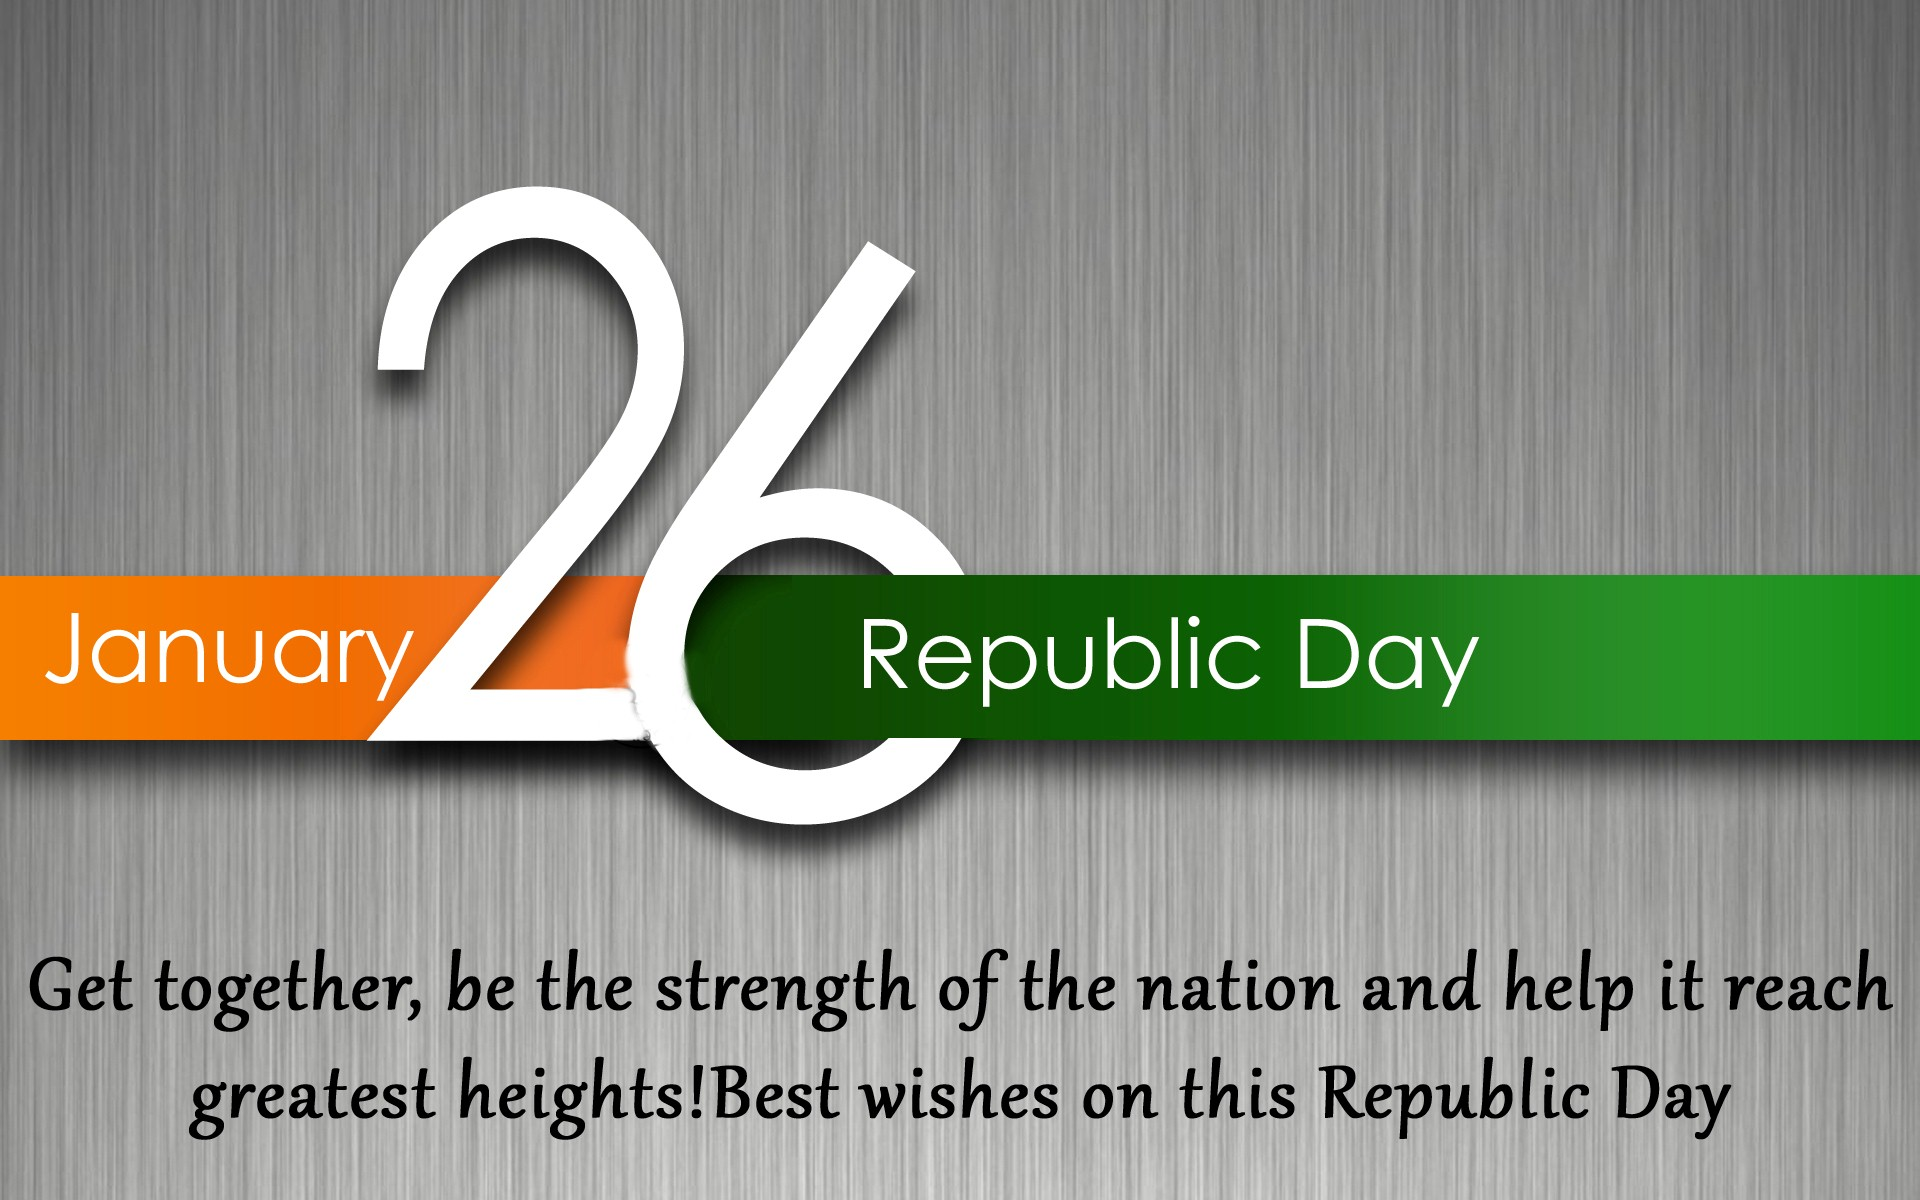 BHARAT DARSHAN - 67th REPUBLIC DAY GREETINGS - PRAYER FOR STRENGTH THROUGH UNITY.